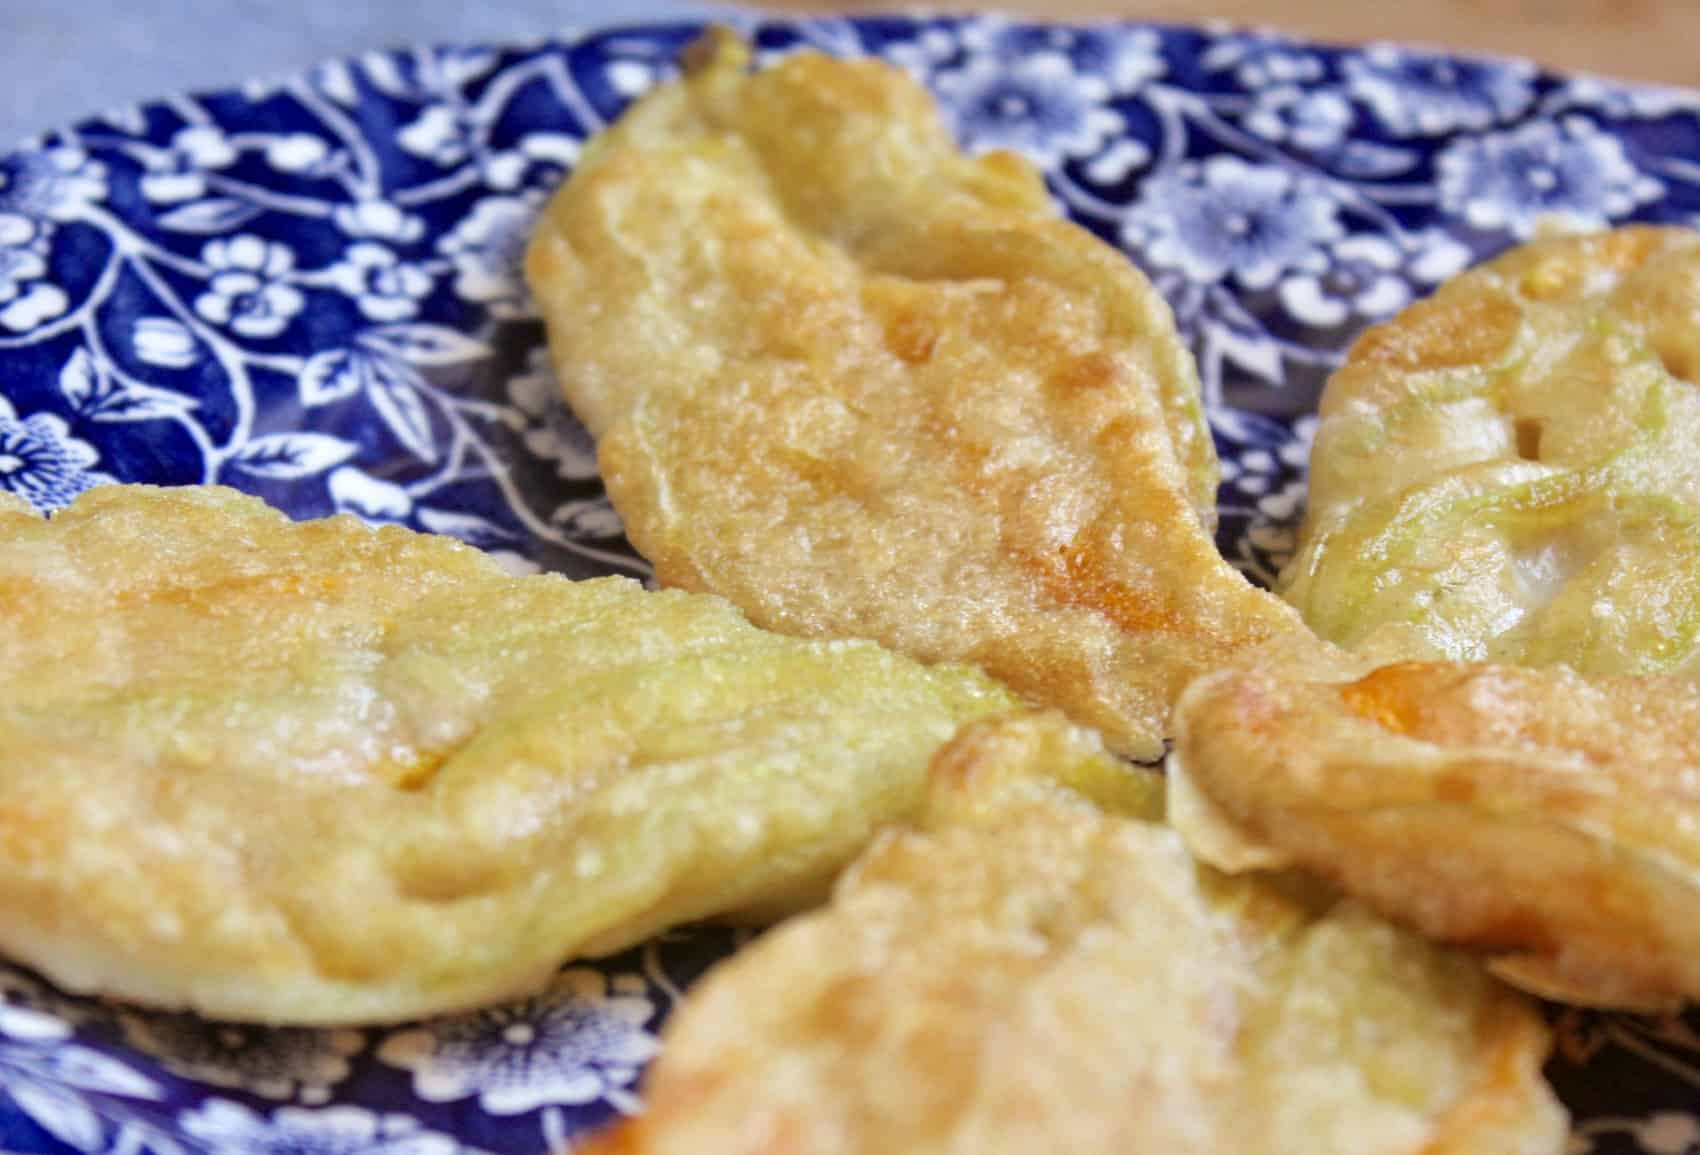 fried Italian zucchini blossoms on a floral plate